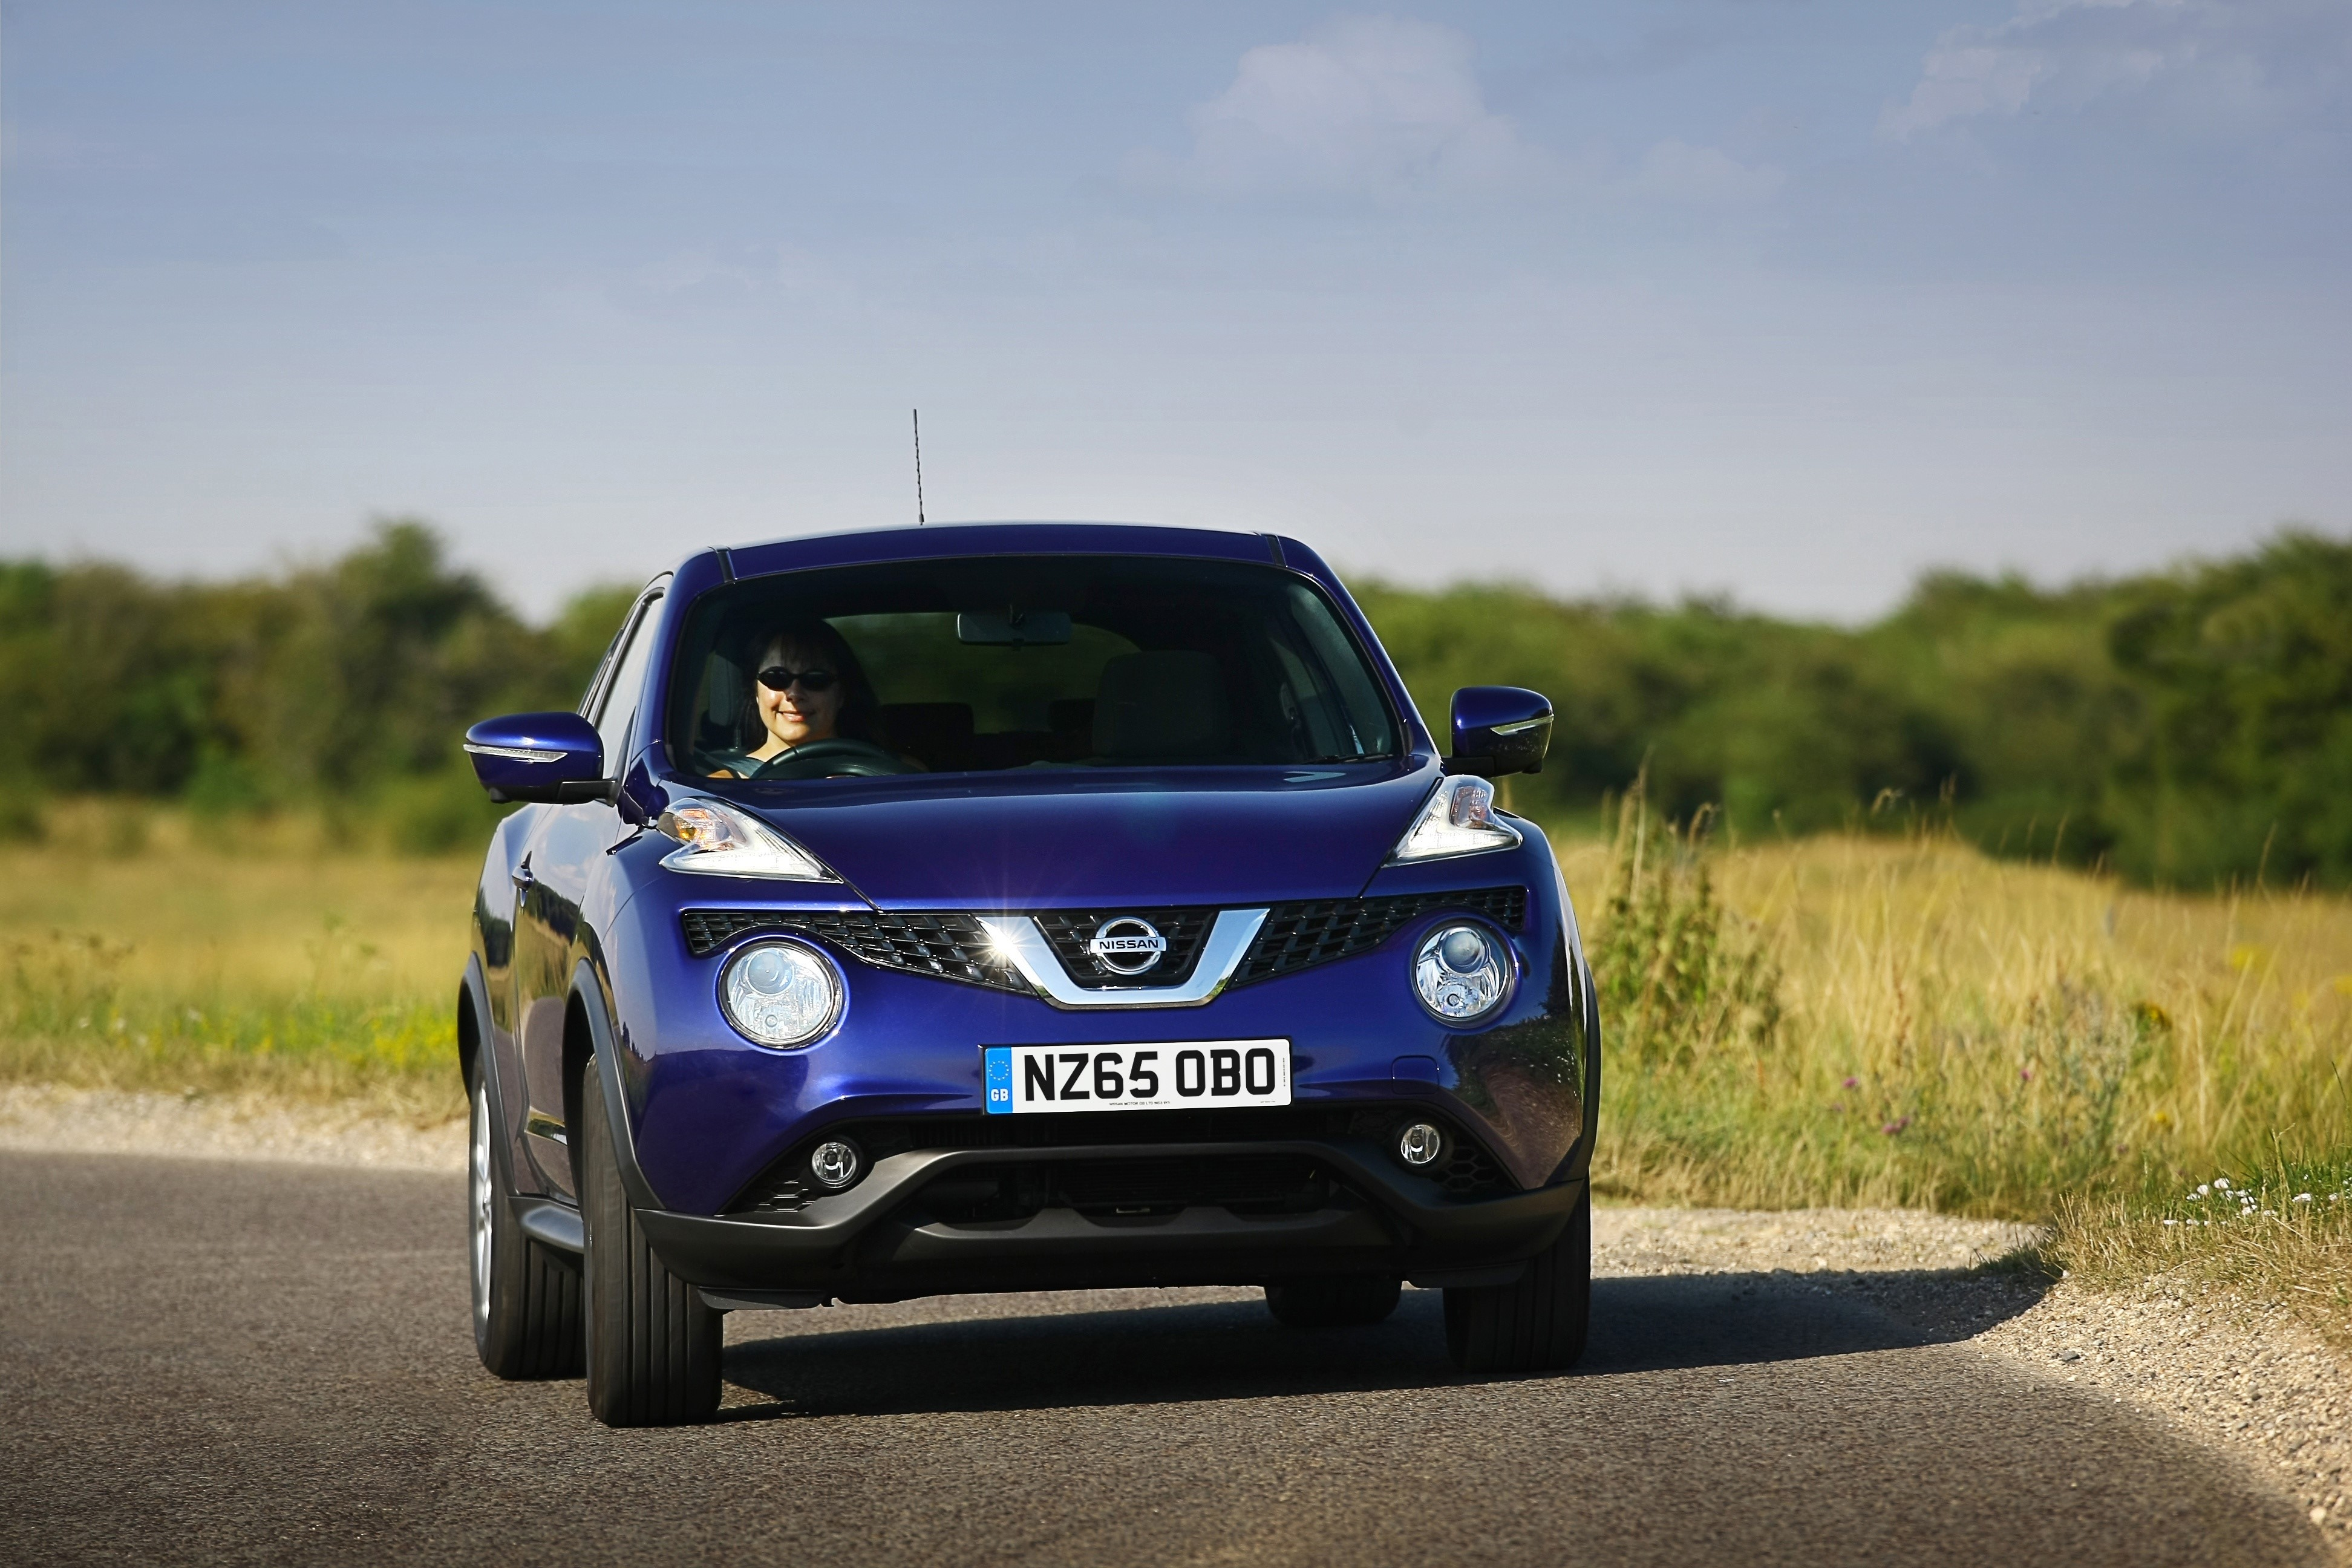 The Juke was one of the earliest crossover options